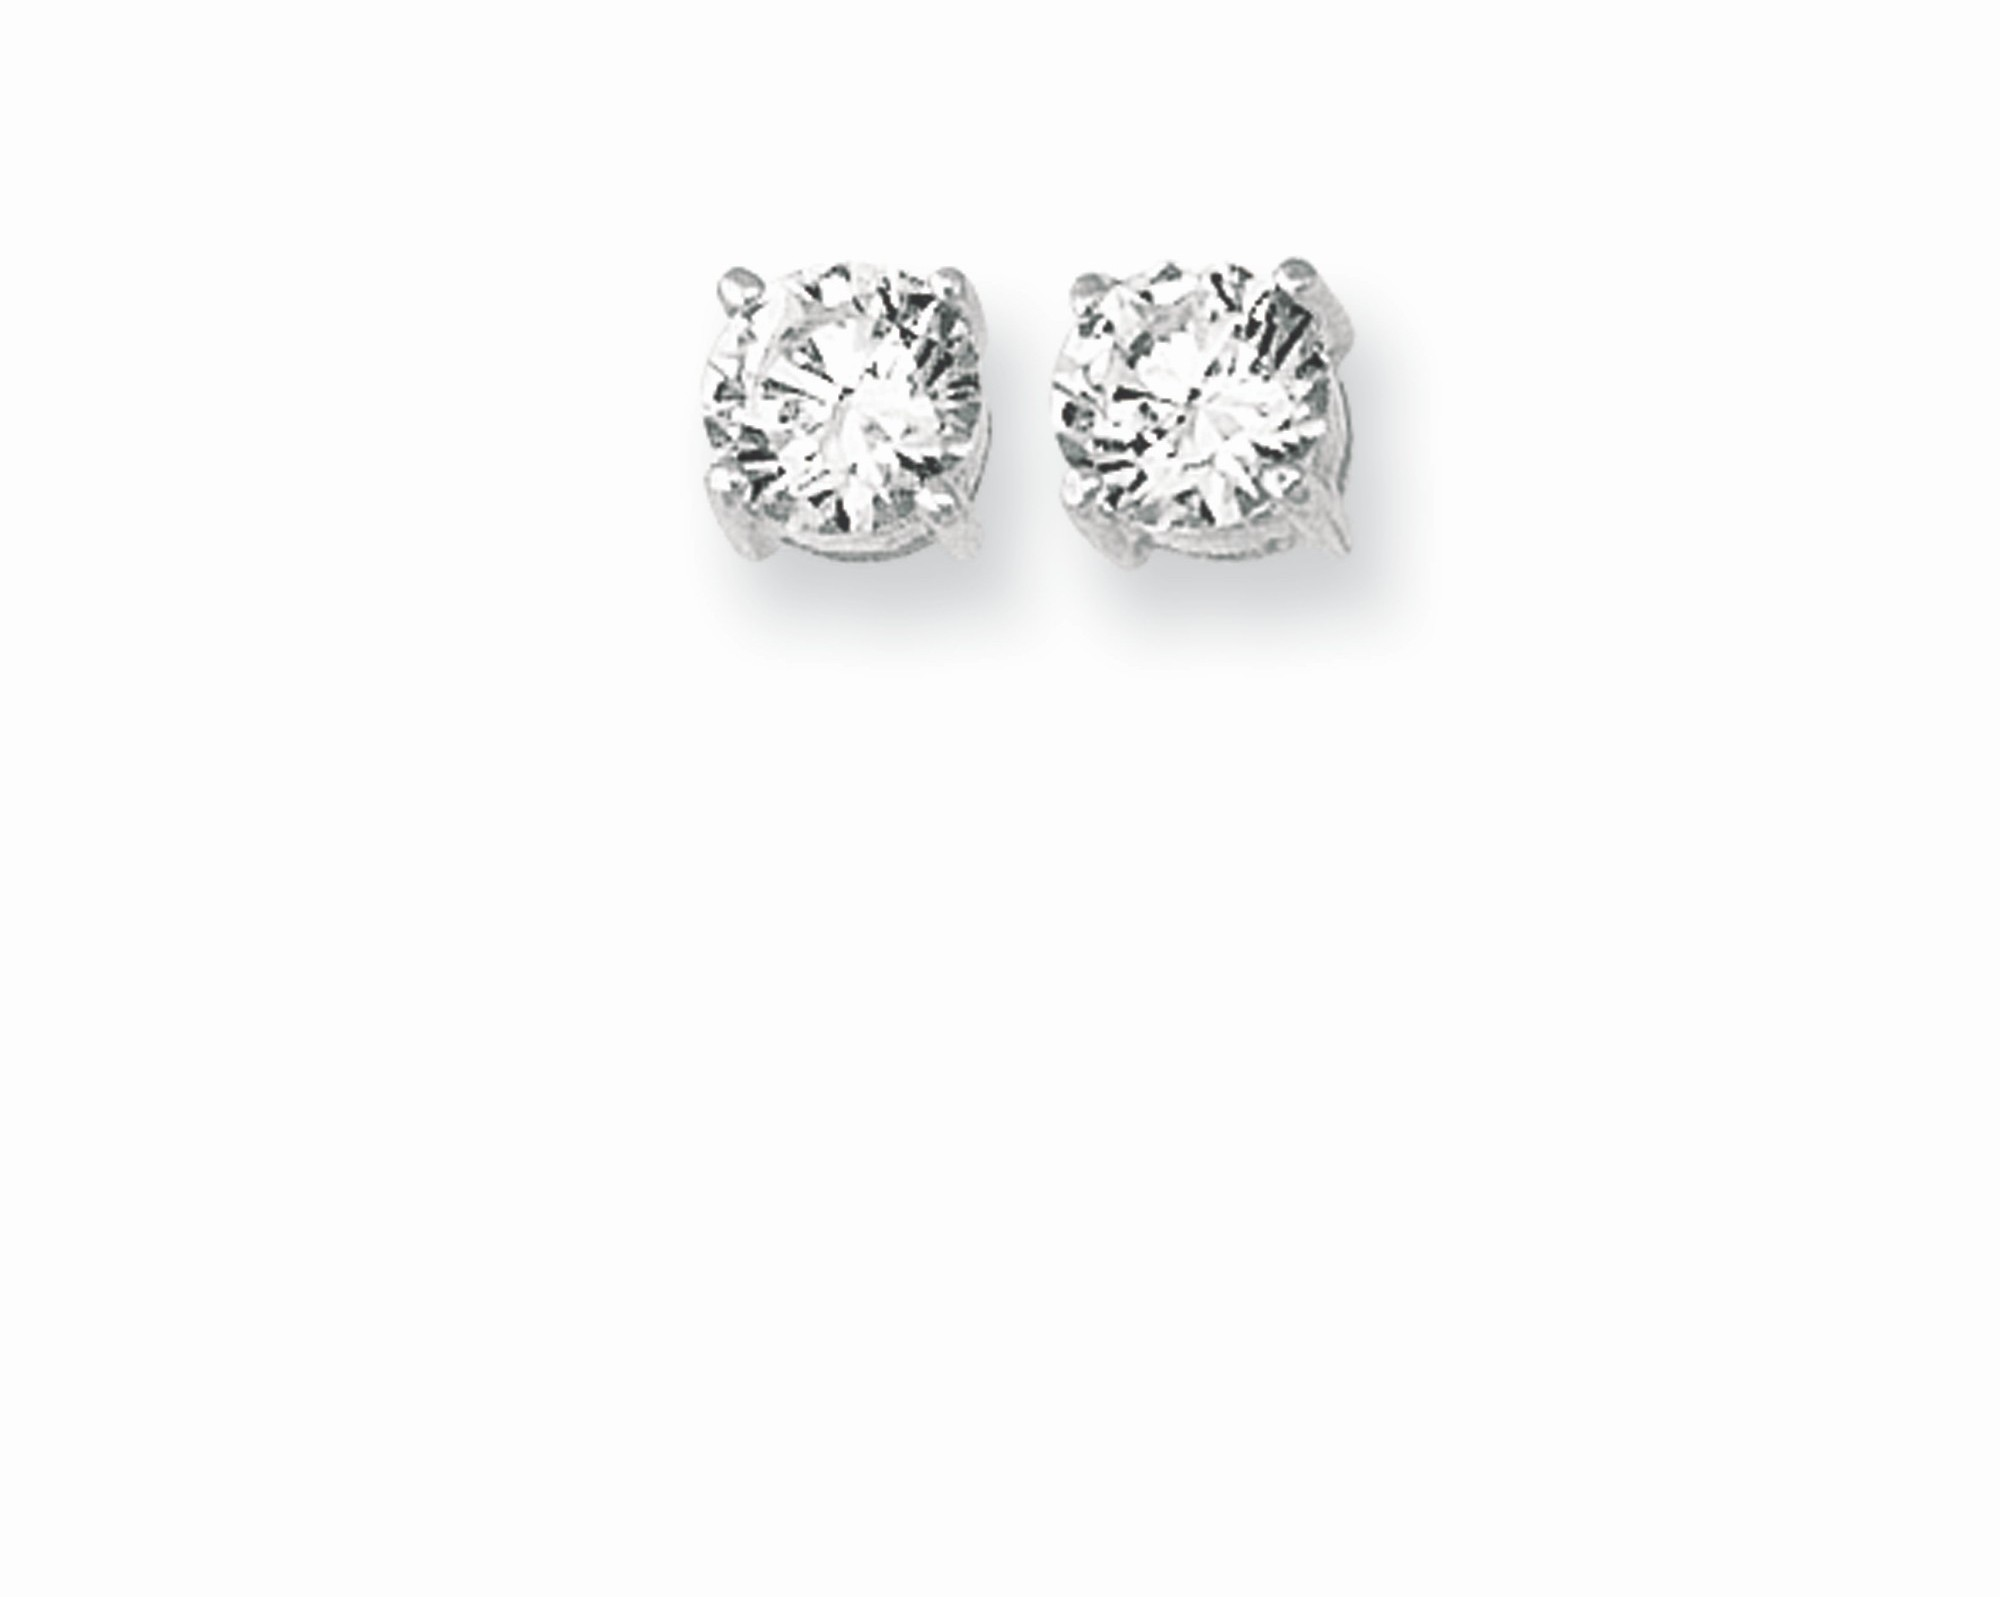 "Silver Rhodium Plated Shiny 5.0mm (1/5"") Clear Round Cubic Zirconia (CZ) Post Back Earrings"